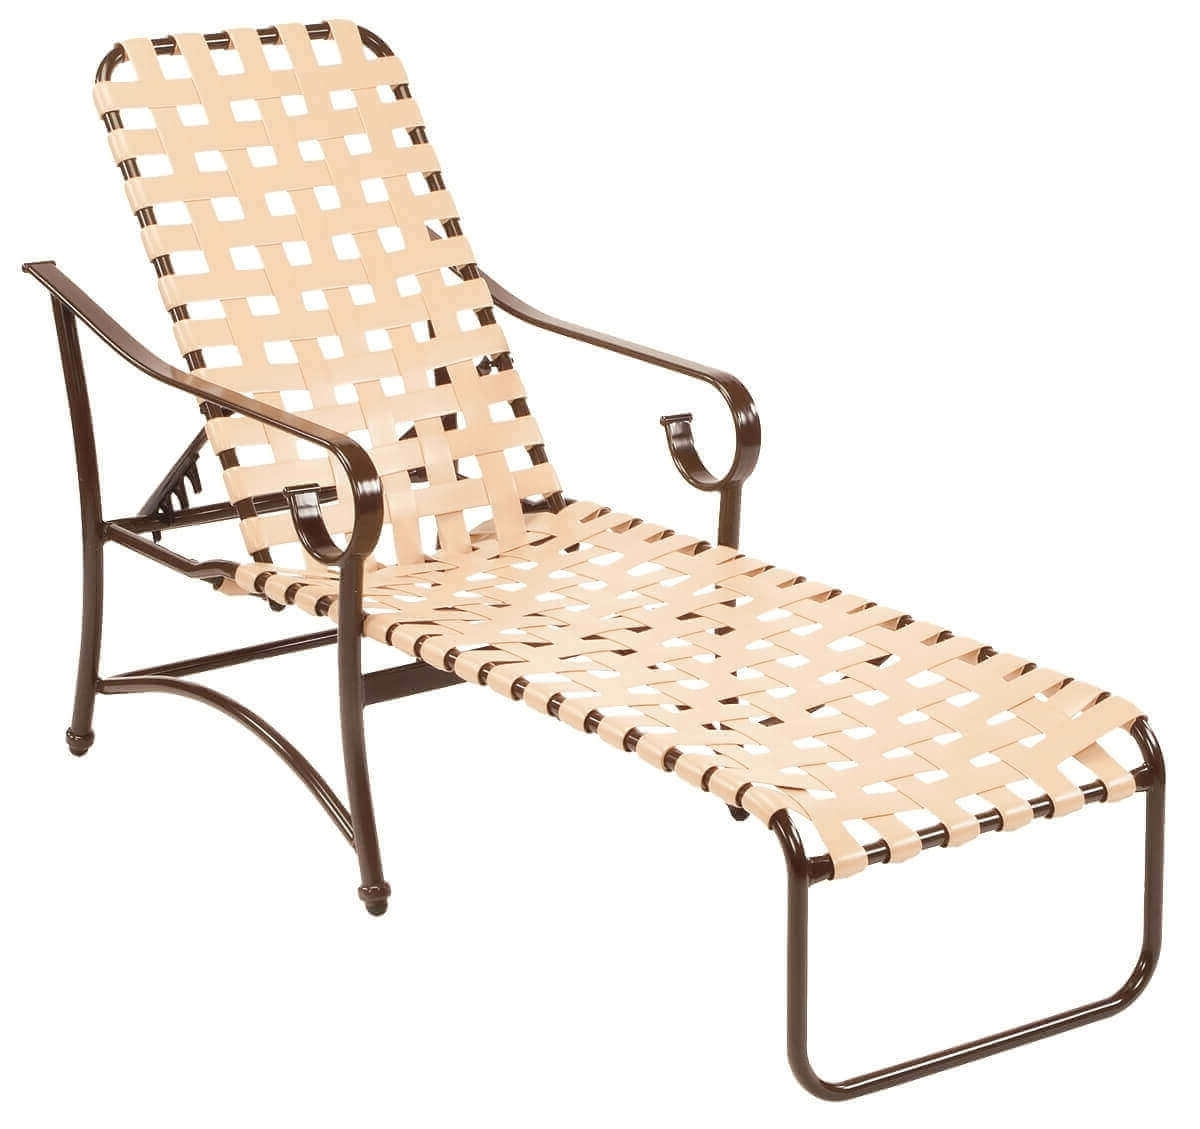 Barbados Cross Weave Vinyl Strap Chaise Lounge – Commercial Regarding Most Up To Date Chaise Lounge Strap Chairs (View 11 of 15)